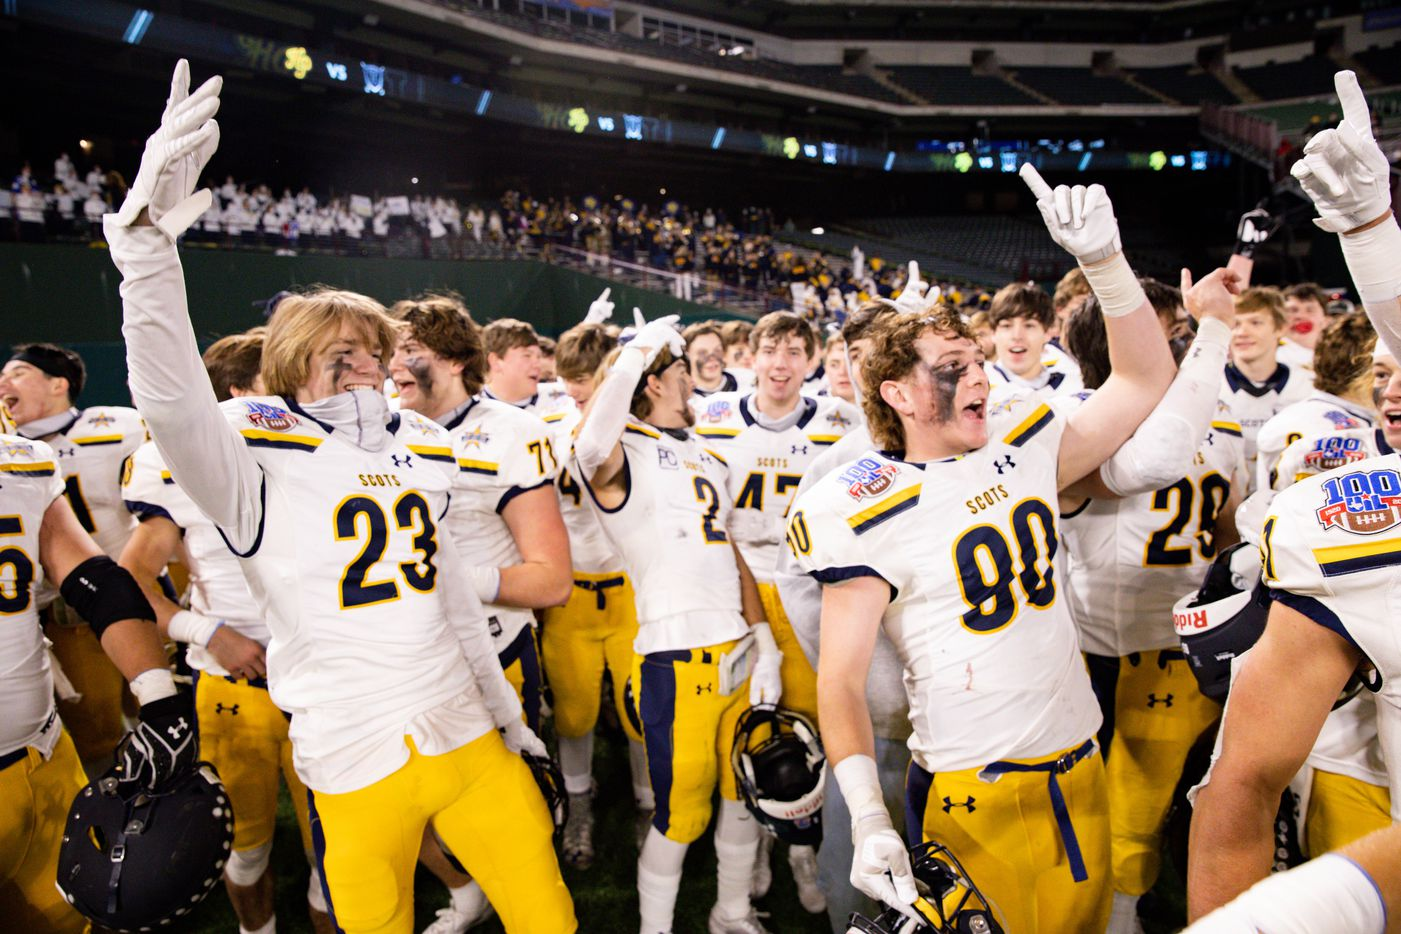 Highland Park players celebrate after winning a Class 5A Division I area-round playoff game against Frisco Independence at Globe Life Park in Arlington on Thursday, Dec. 17, 2020. Highland Park won 42-20. (Juan Figueroa/ The Dallas Morning News)